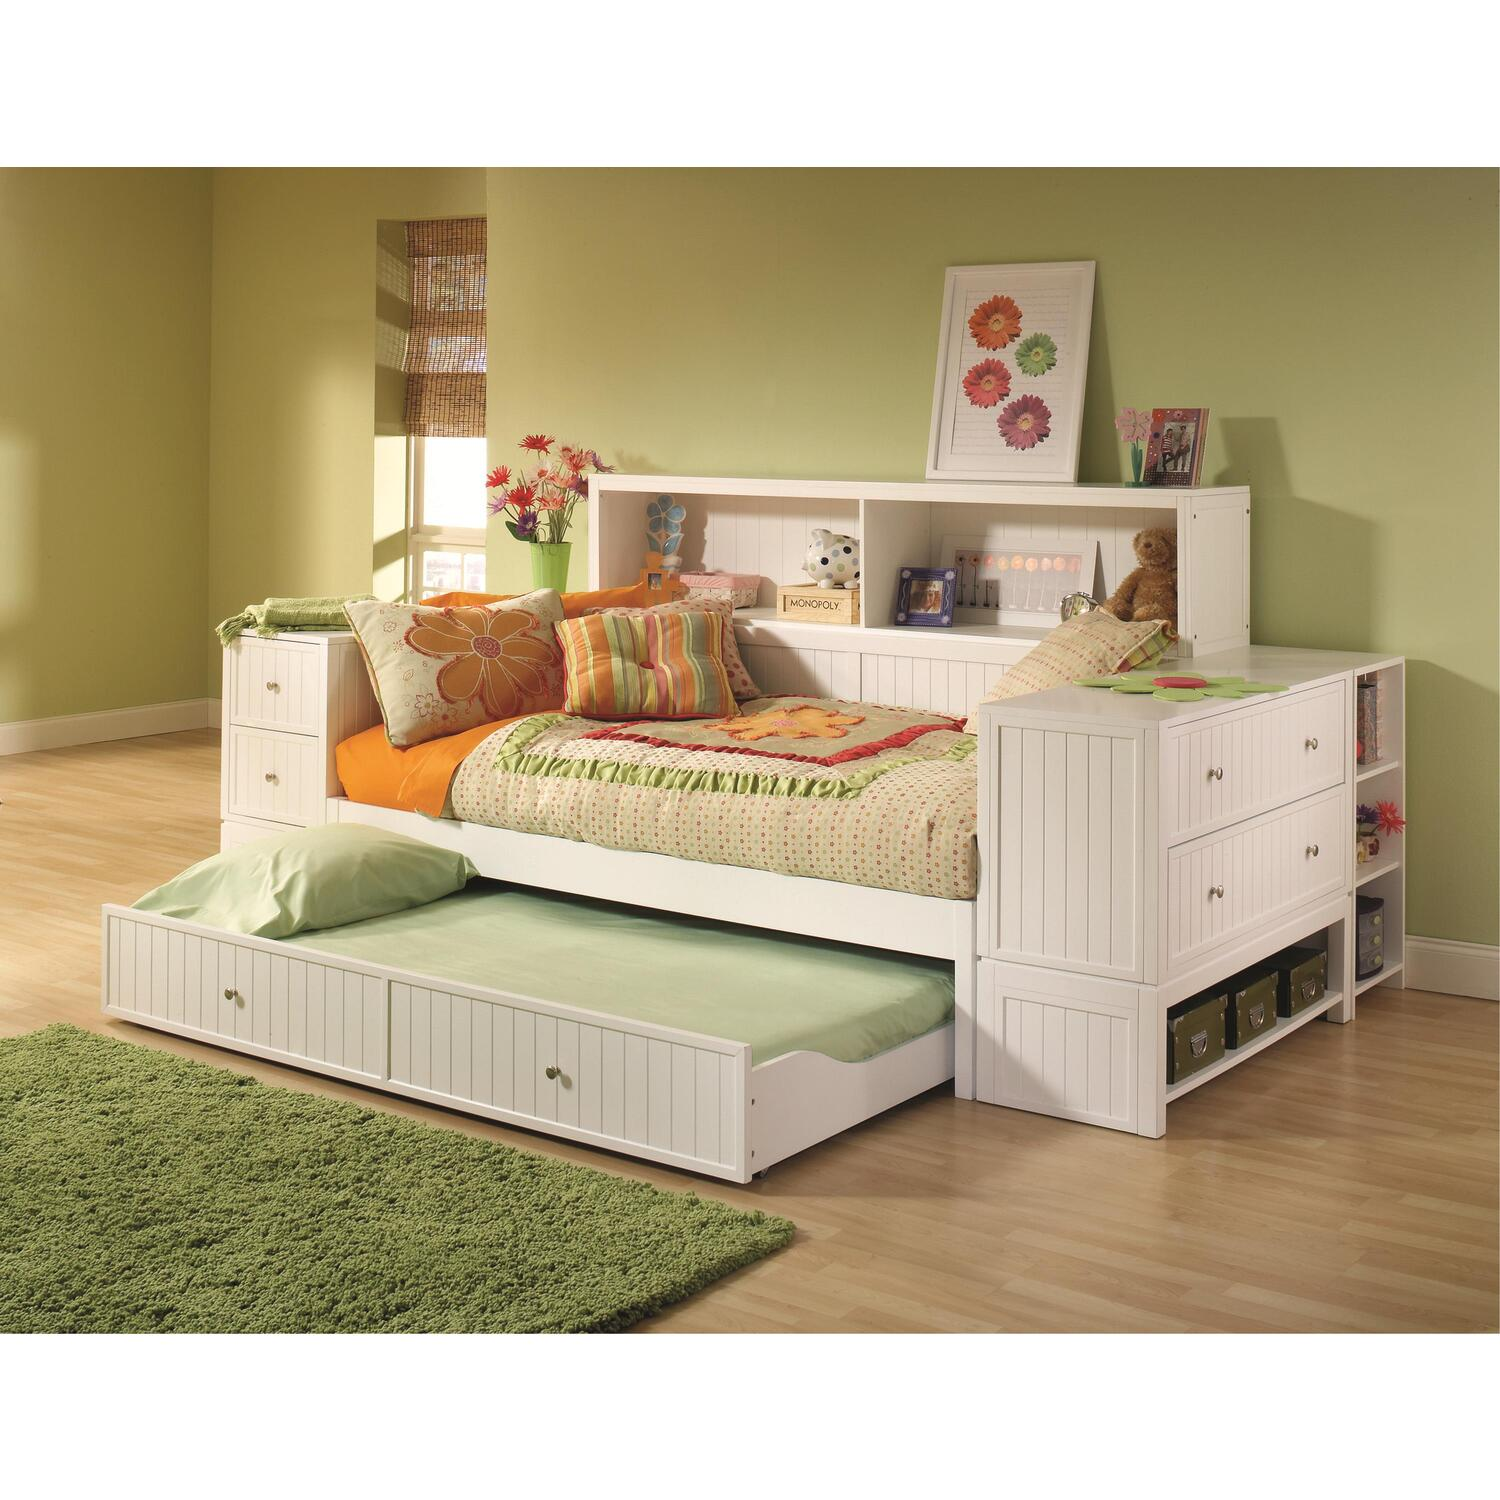 Hillsdale Furniture Cody Youth Bedroom Bookcase Daybed